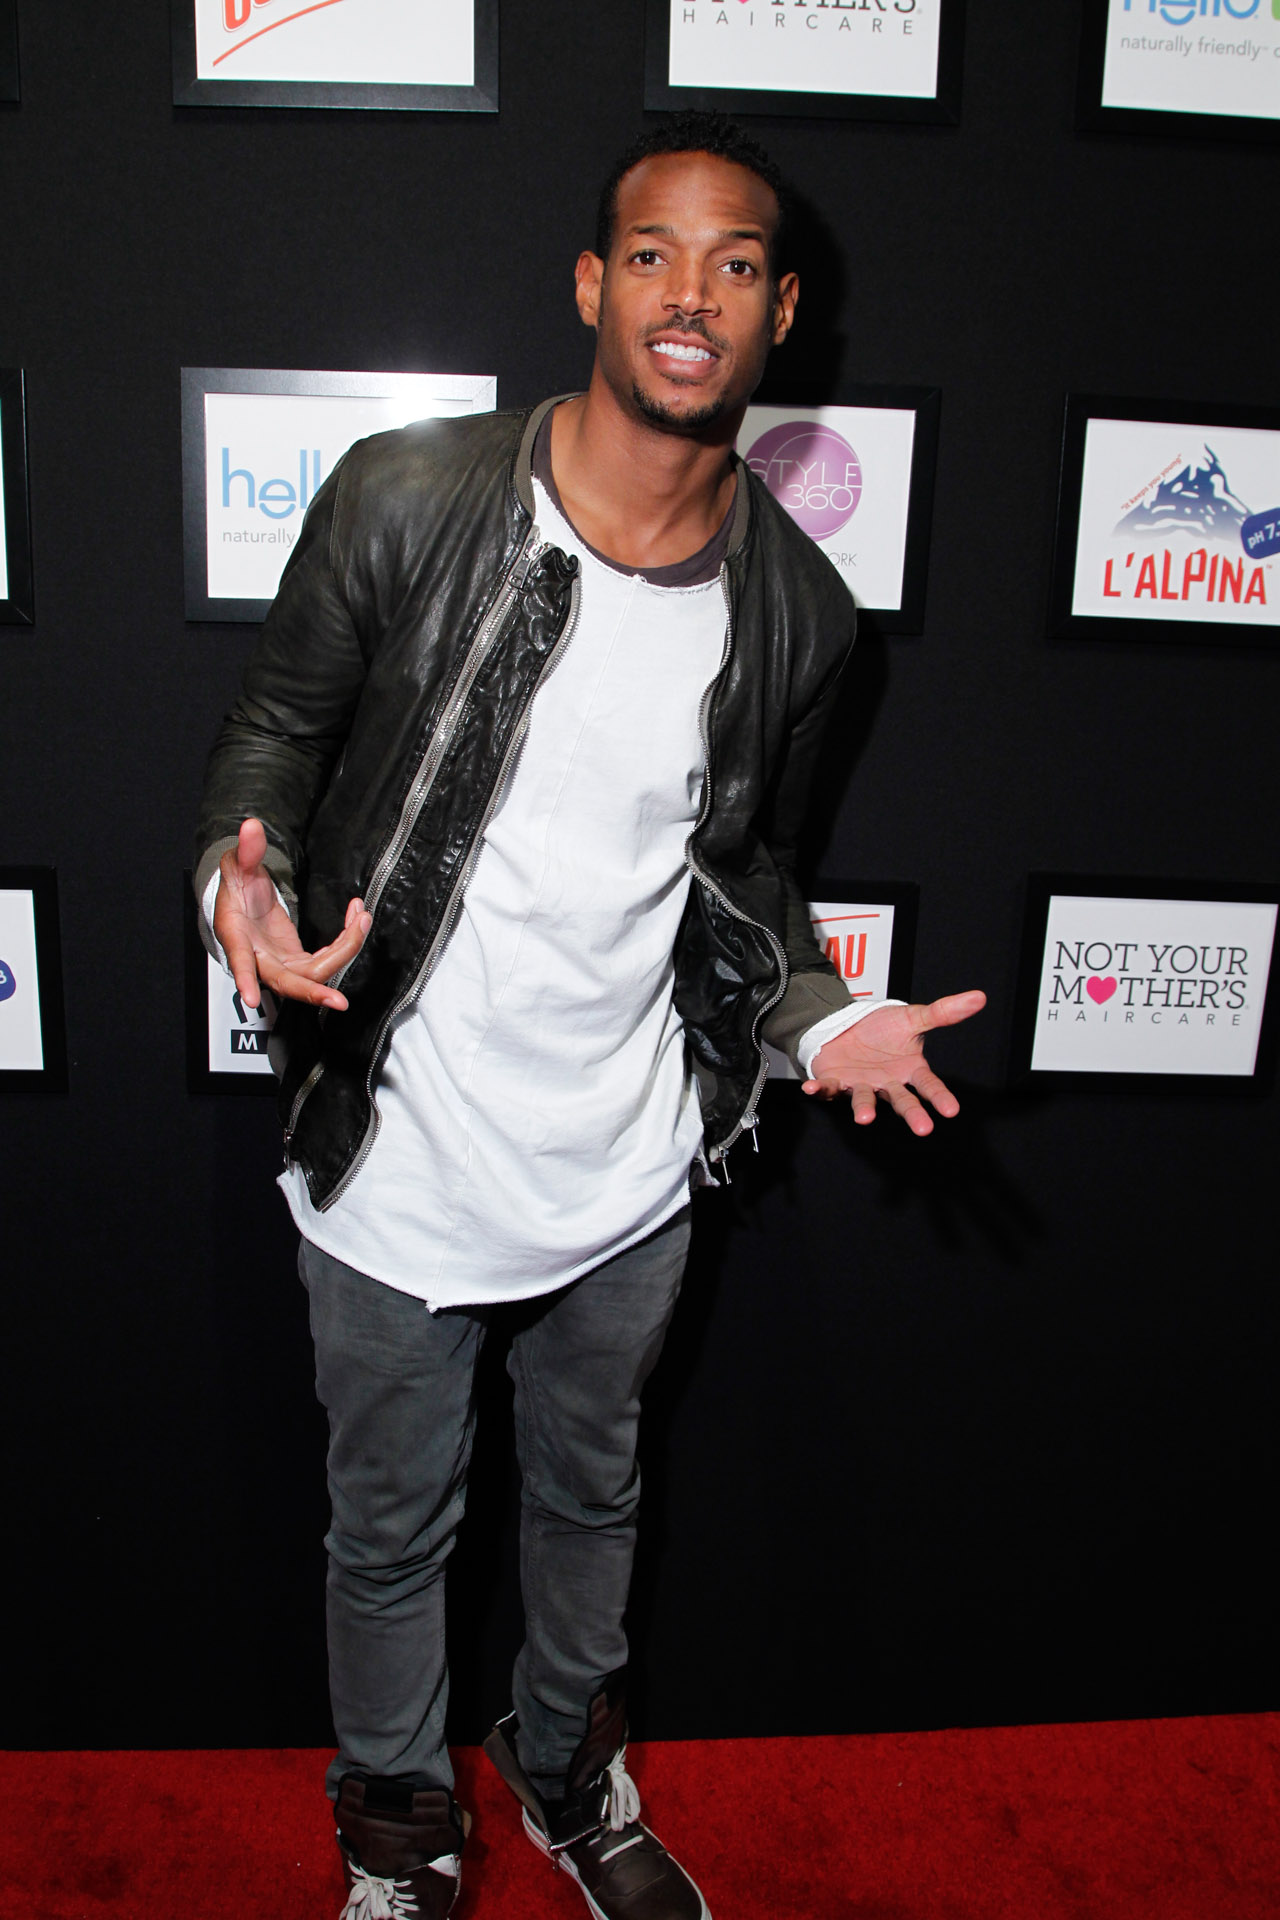 29_Comedian Marlon Wayans on the red carpet at STYLE360